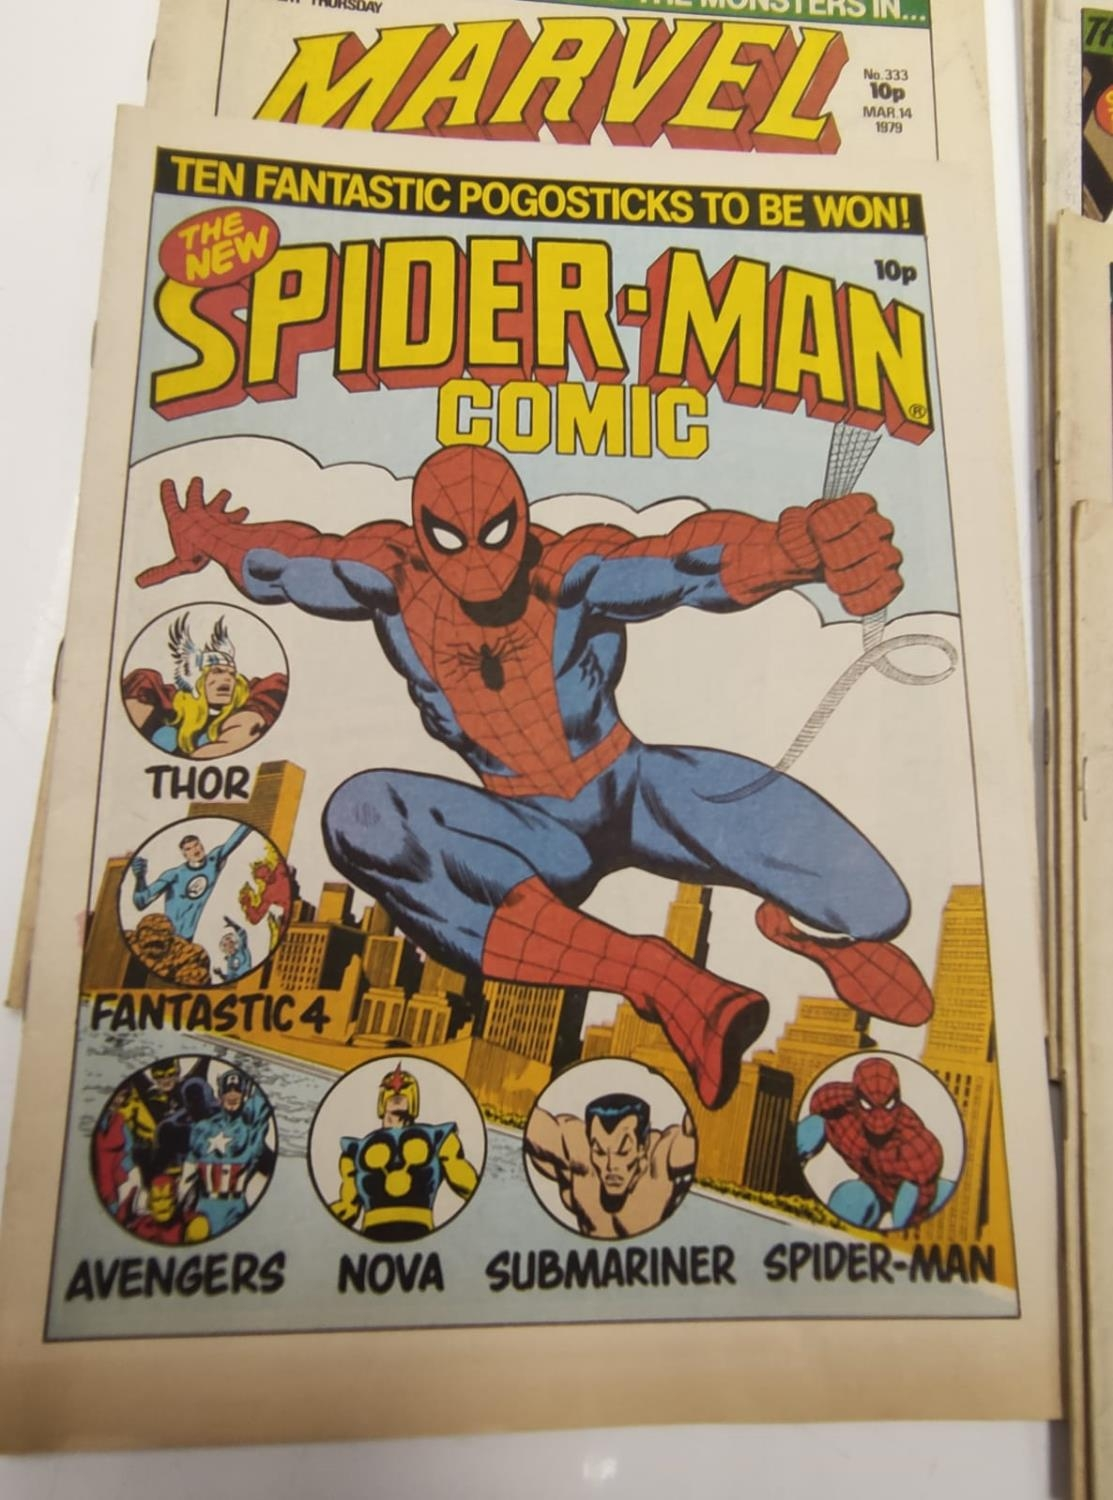 20 editions of mixed Vintage Marvel Comics. - Image 30 of 56